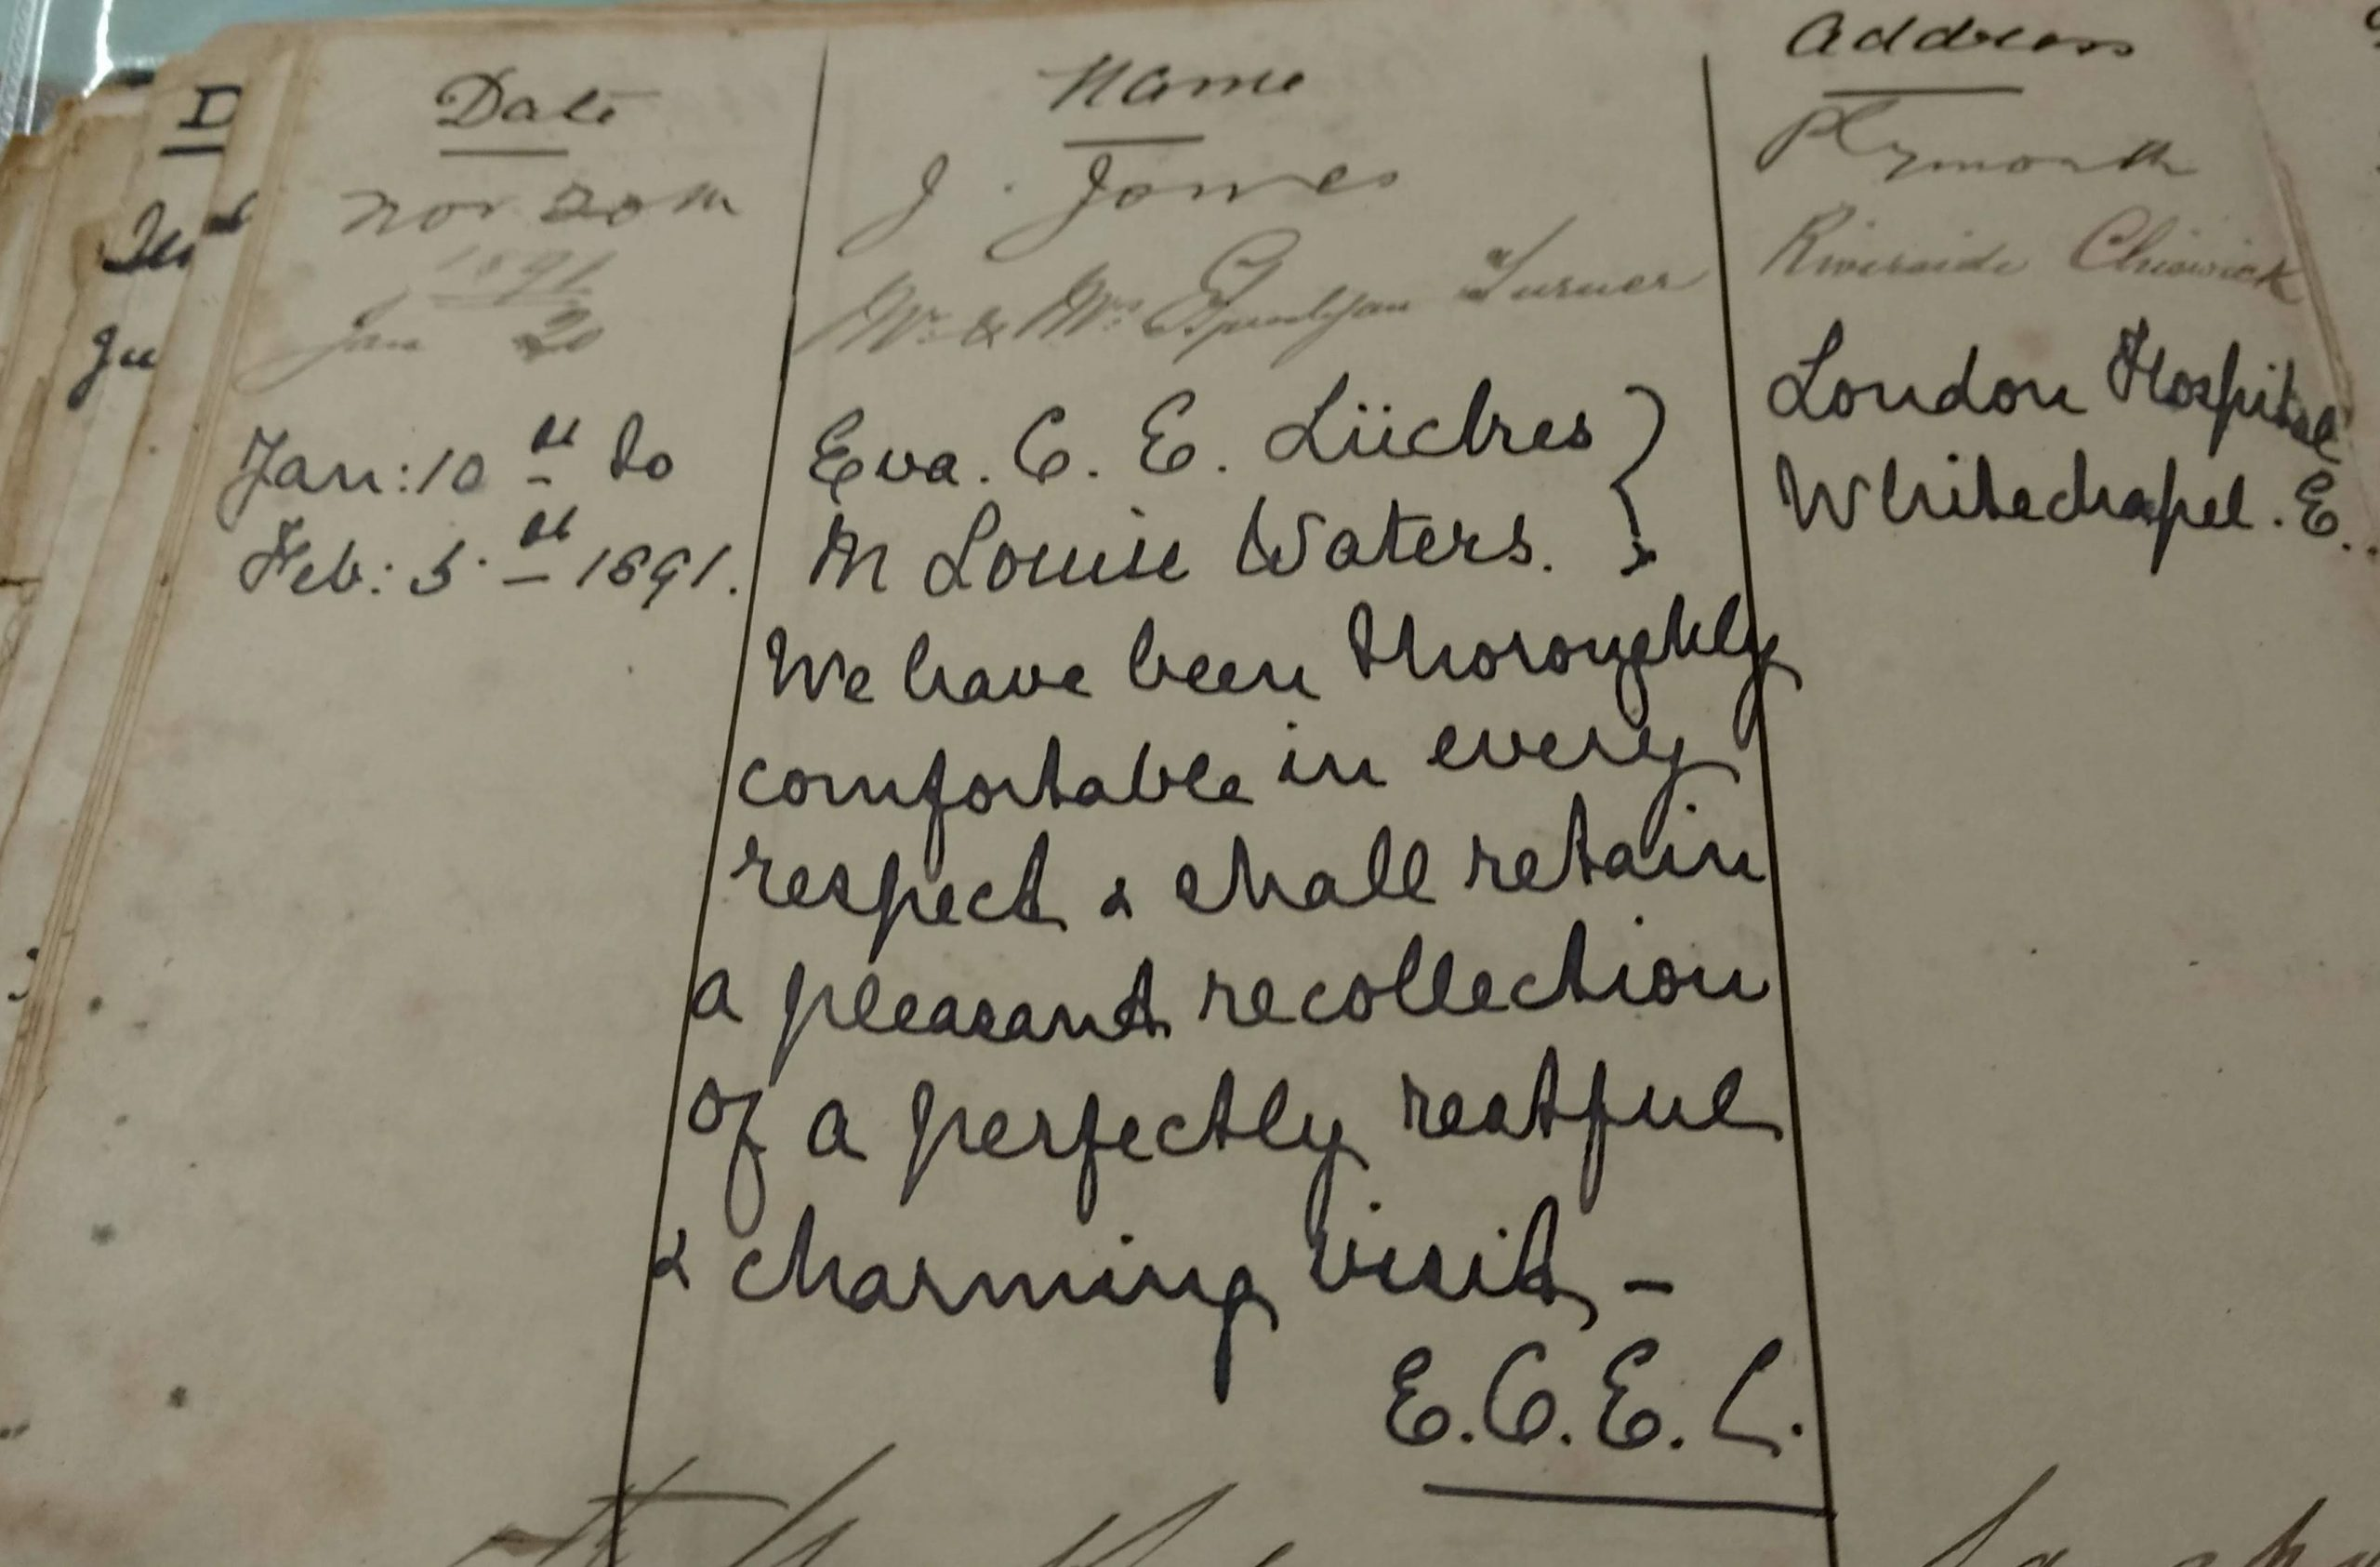 Eva Luckes's entry in Tregarthen's Visitors' Book